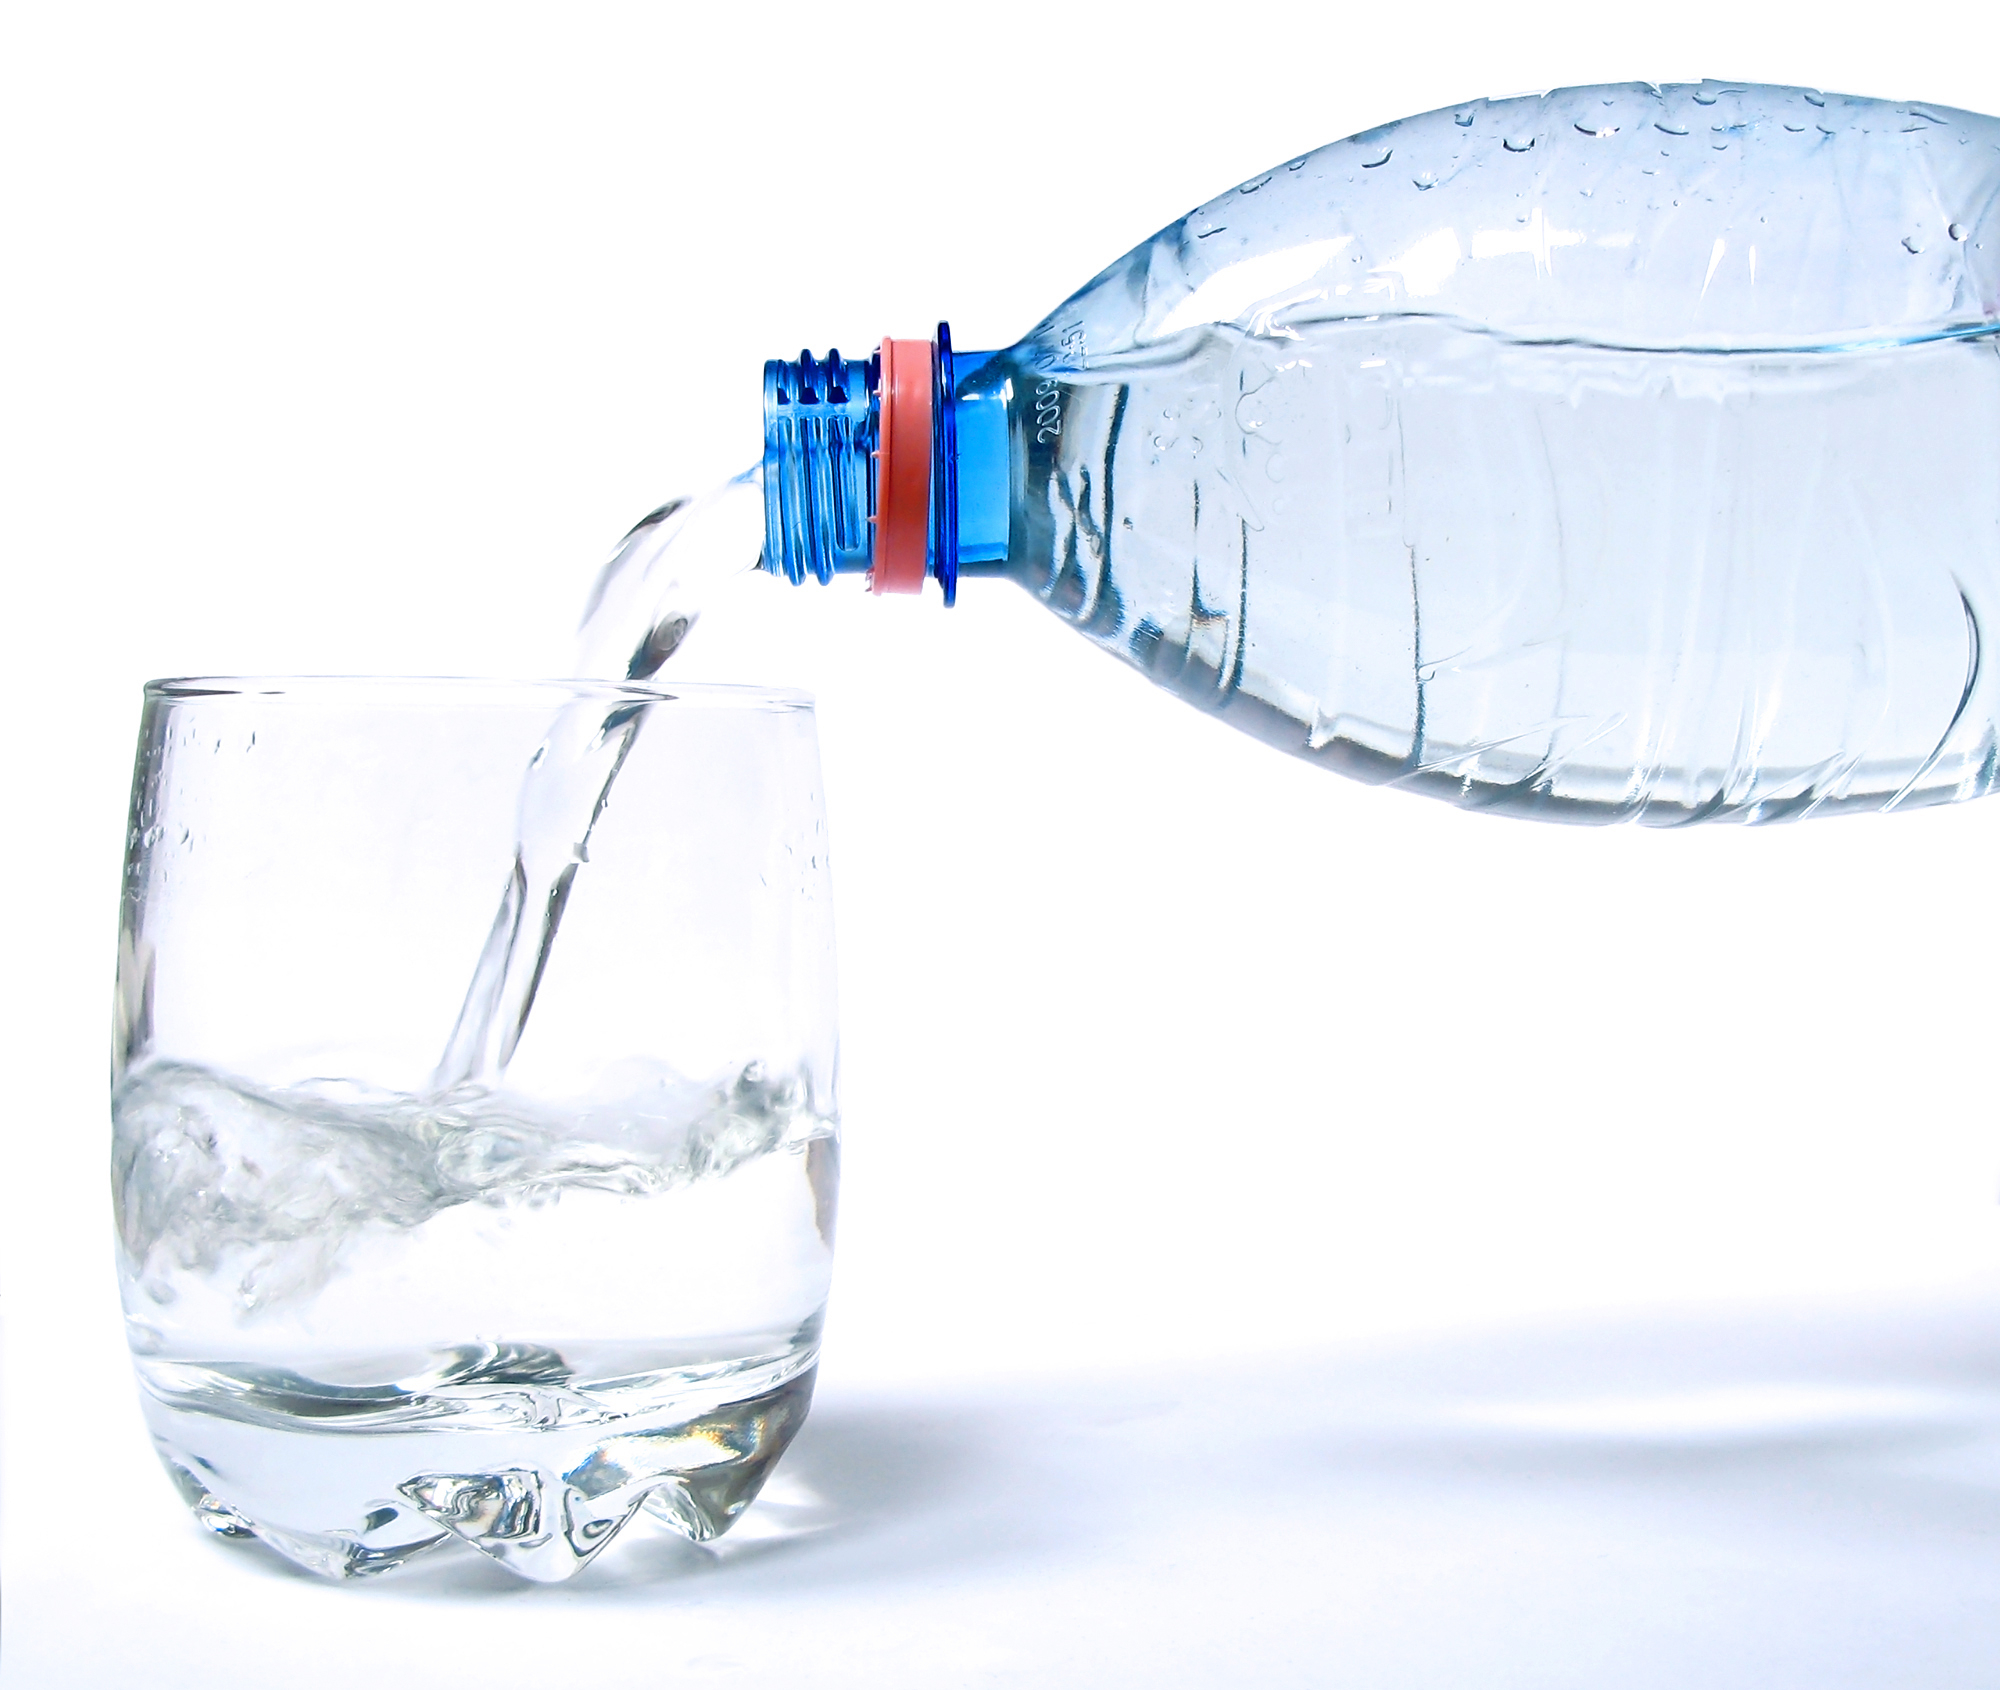 Importance of pure drinking water and reccommendations to optimize hydration